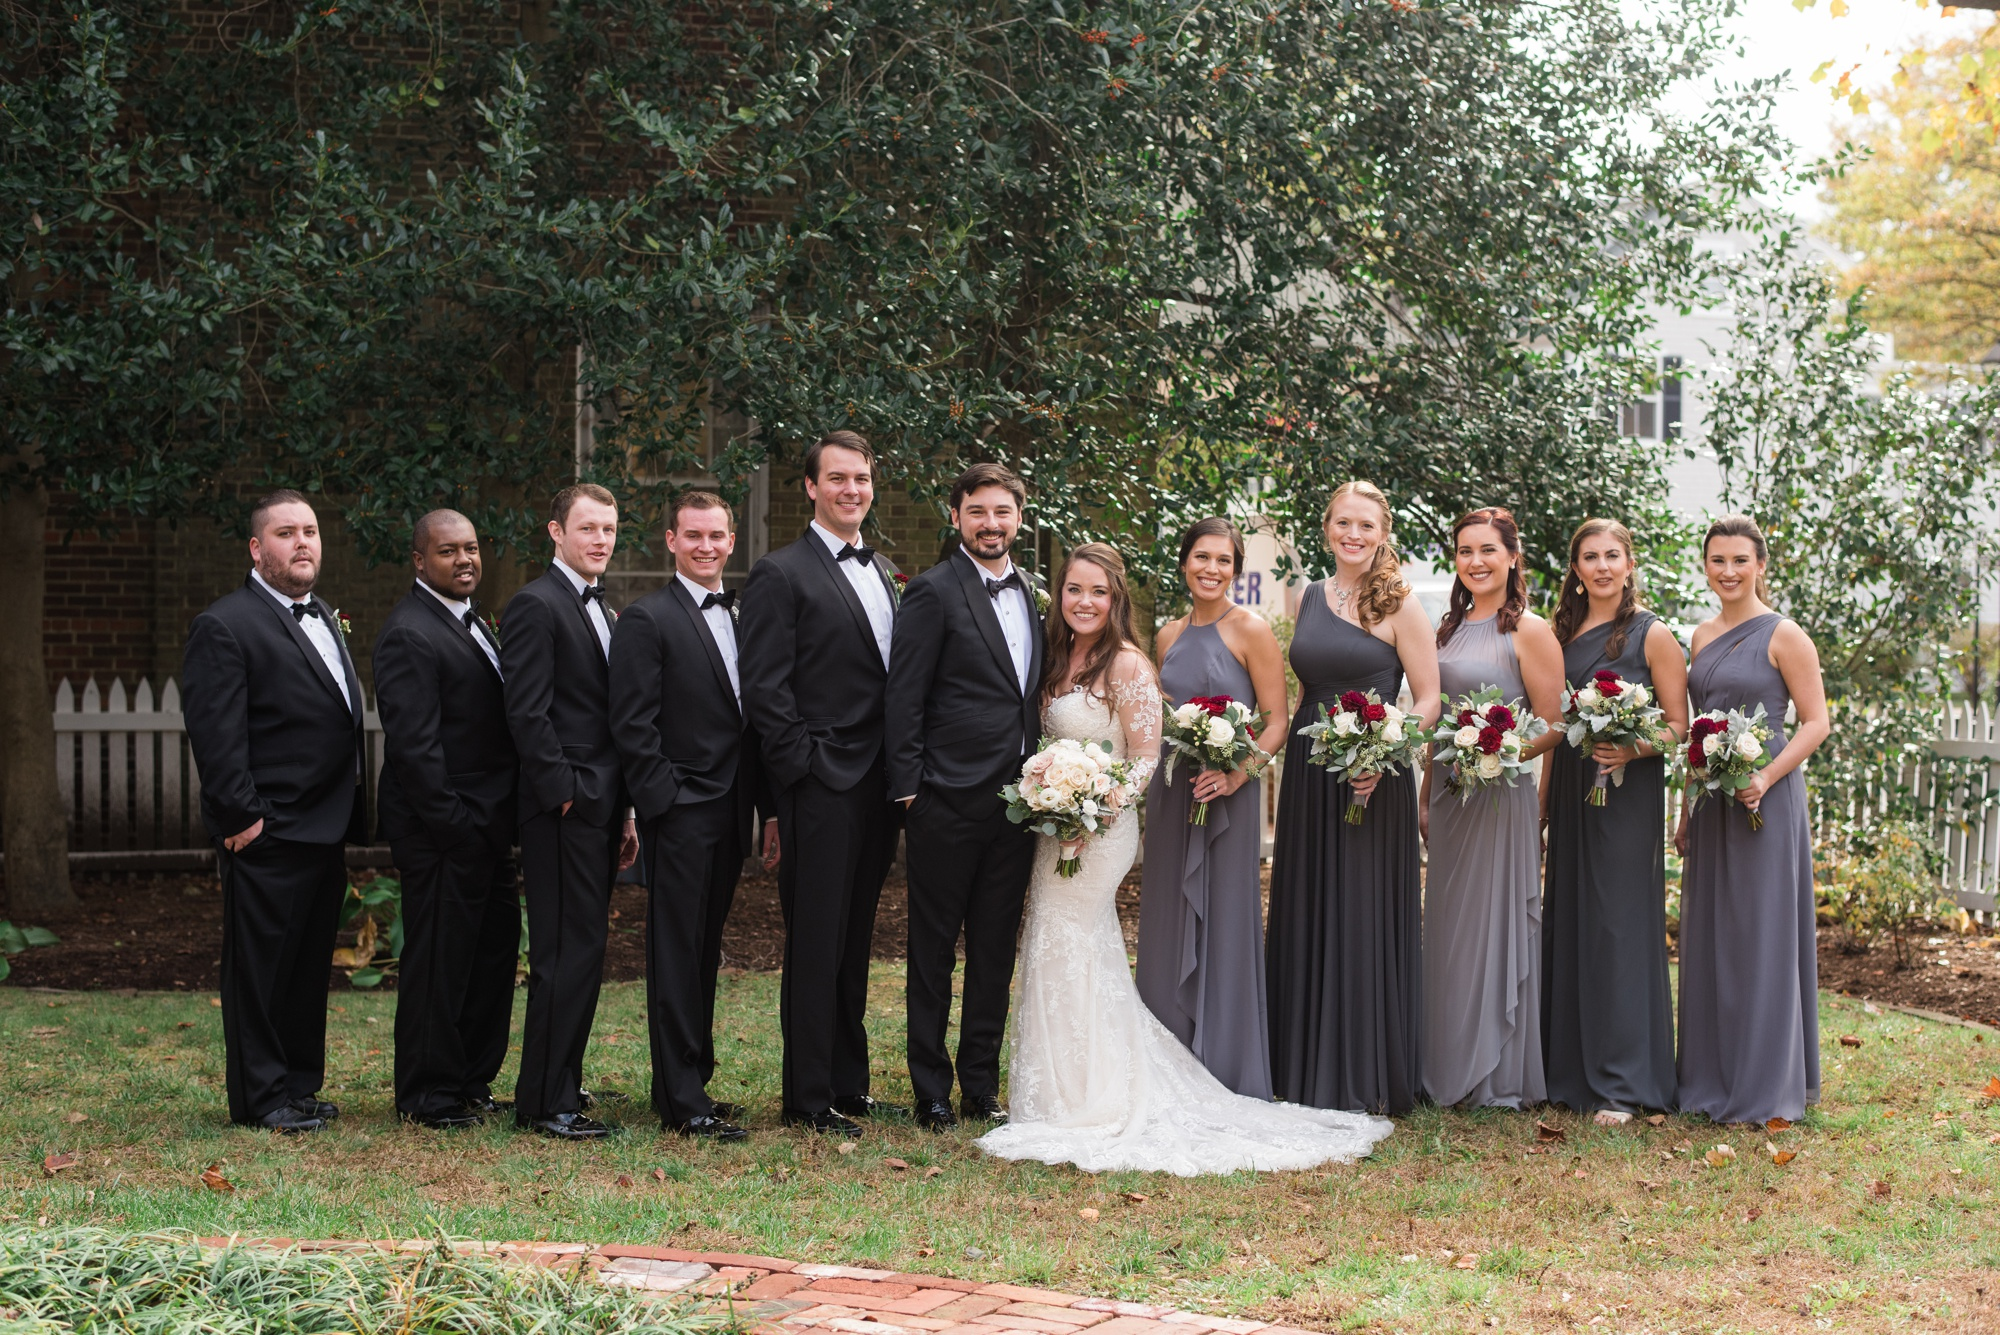 The Tidewater inn wedding party at Bullet House